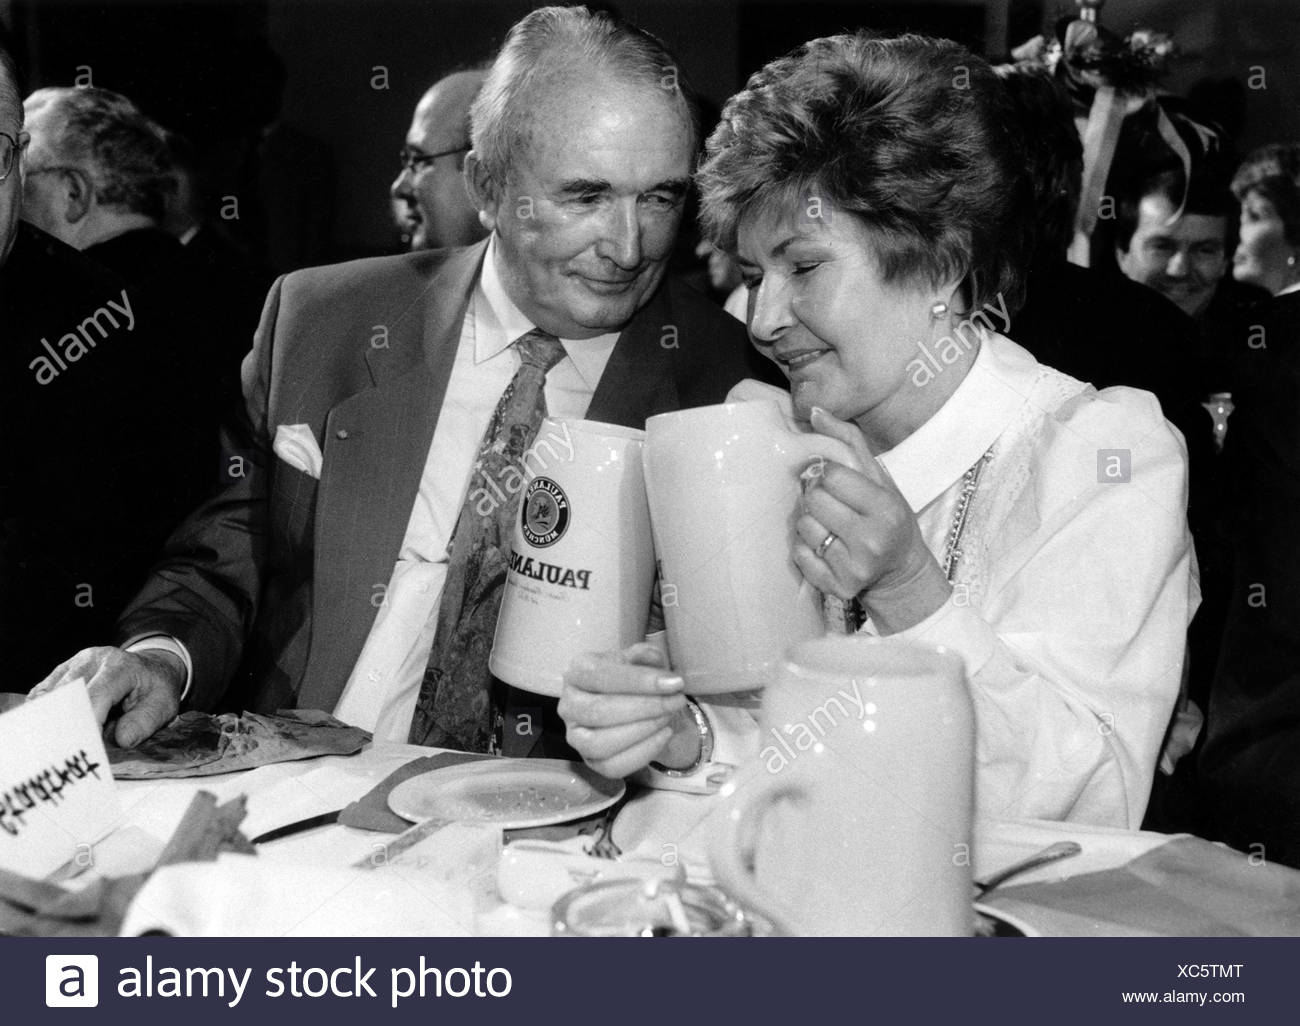 Schönhuber, Franz, 10.1.1923 - 27.11.2005, German politician, (REP), half length, with his wife Ingrid, strong beer tapping, Salvatorkeller, Salvatorprobe, Nockherberg, Munich, 19.3.1992, Additional-Rights-Clearances-NA - Stock Image